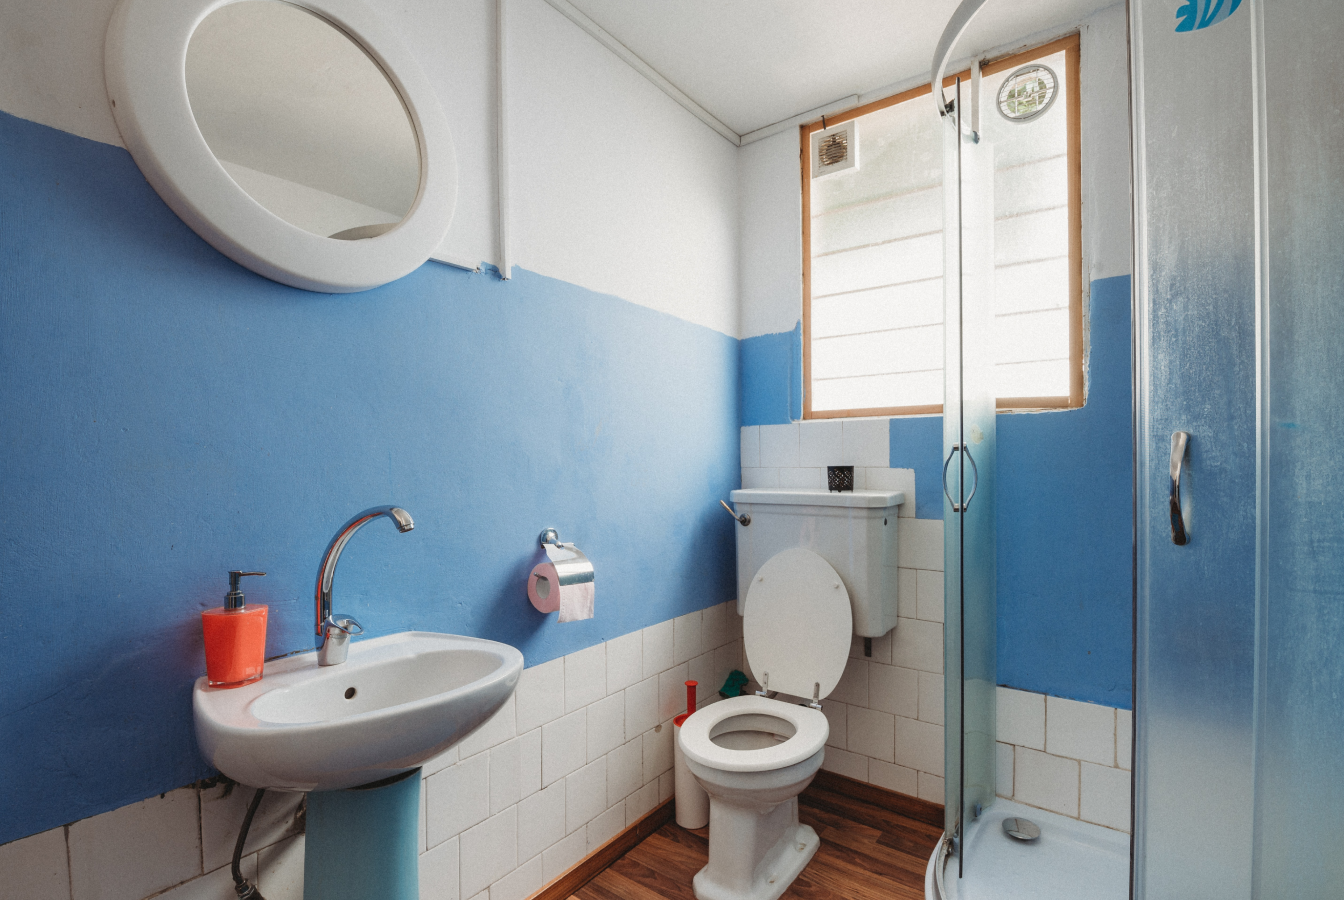 Small bathroom with blue stripe on wall